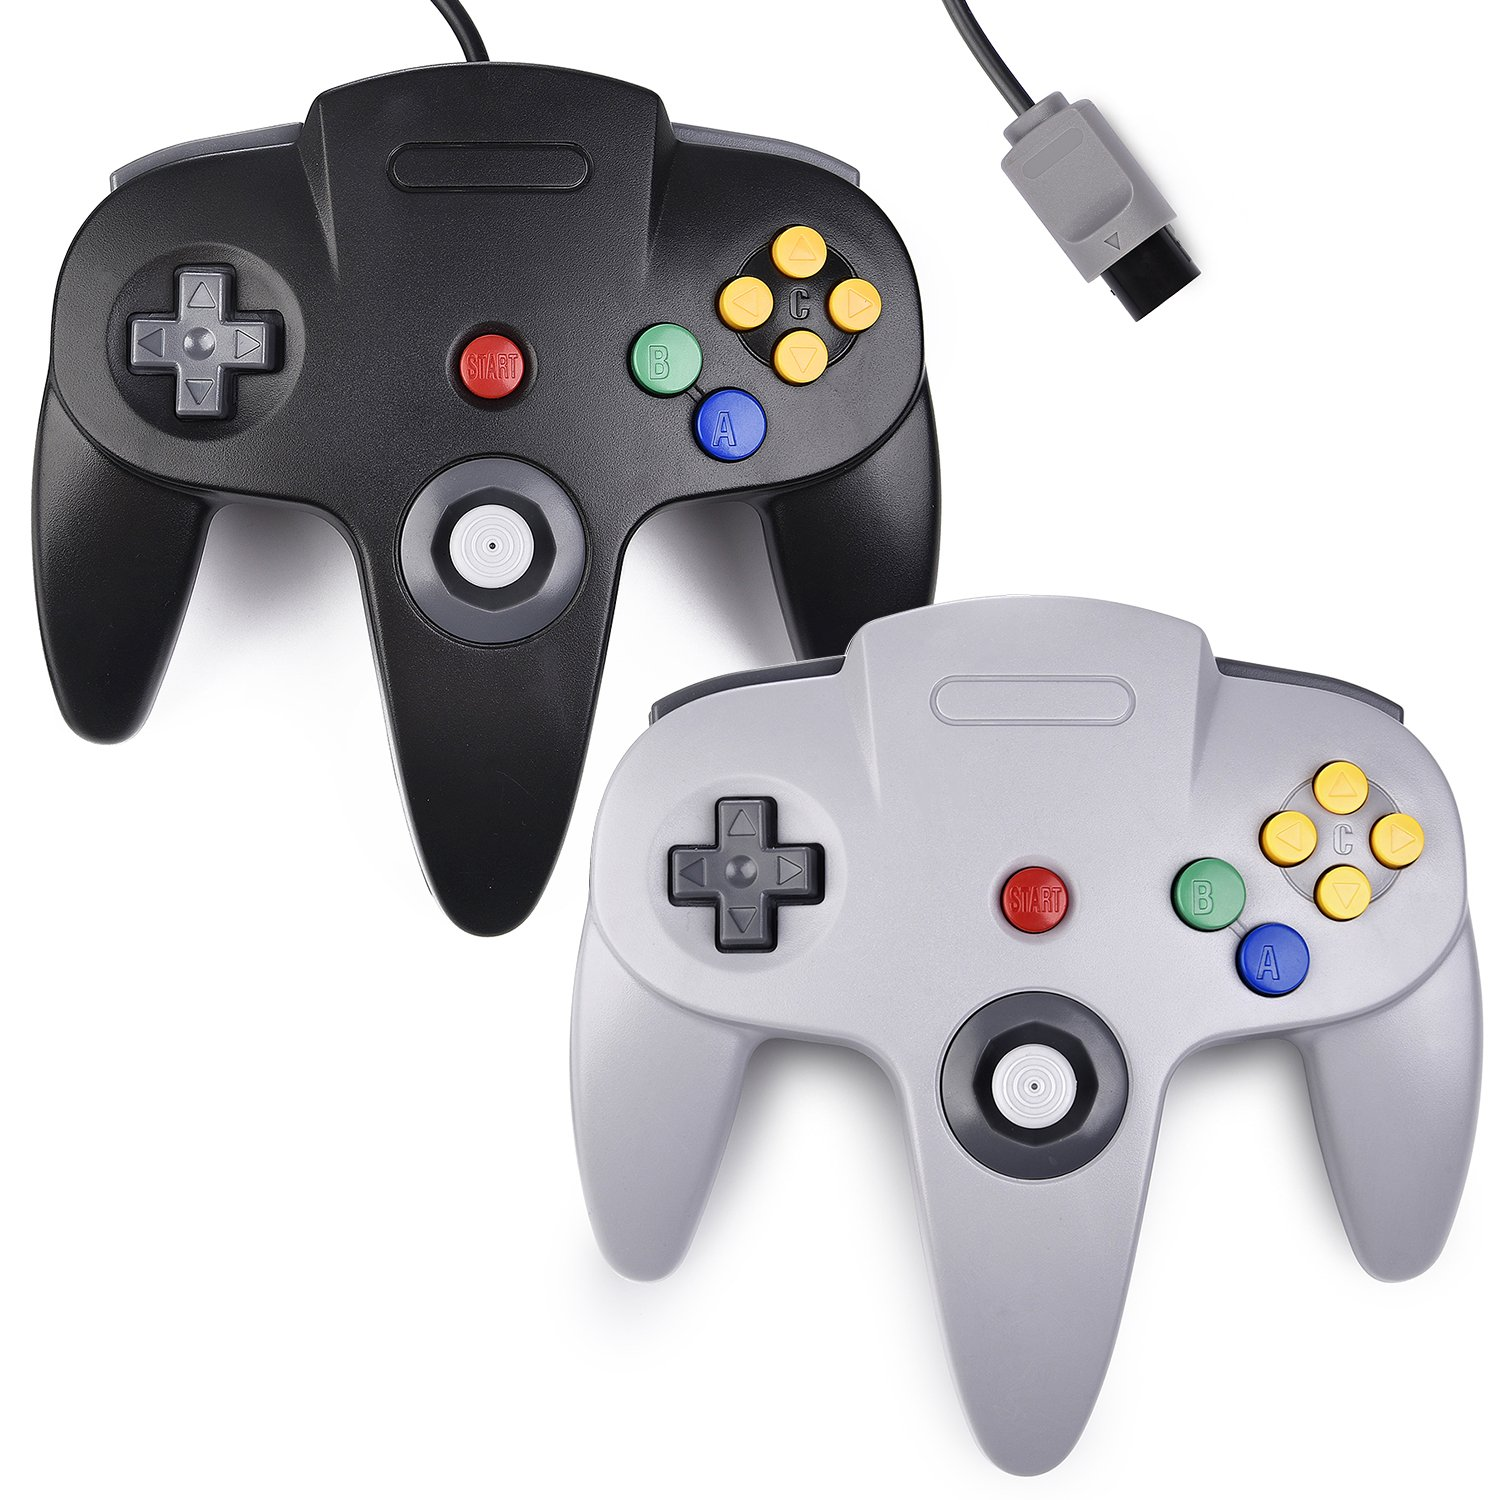 2xClassic 64 N64 Controller,kiwitata Retro Wired Gamepad Controller Joystick for N64 Console Nintendo 64 Video Games System Black+Gray